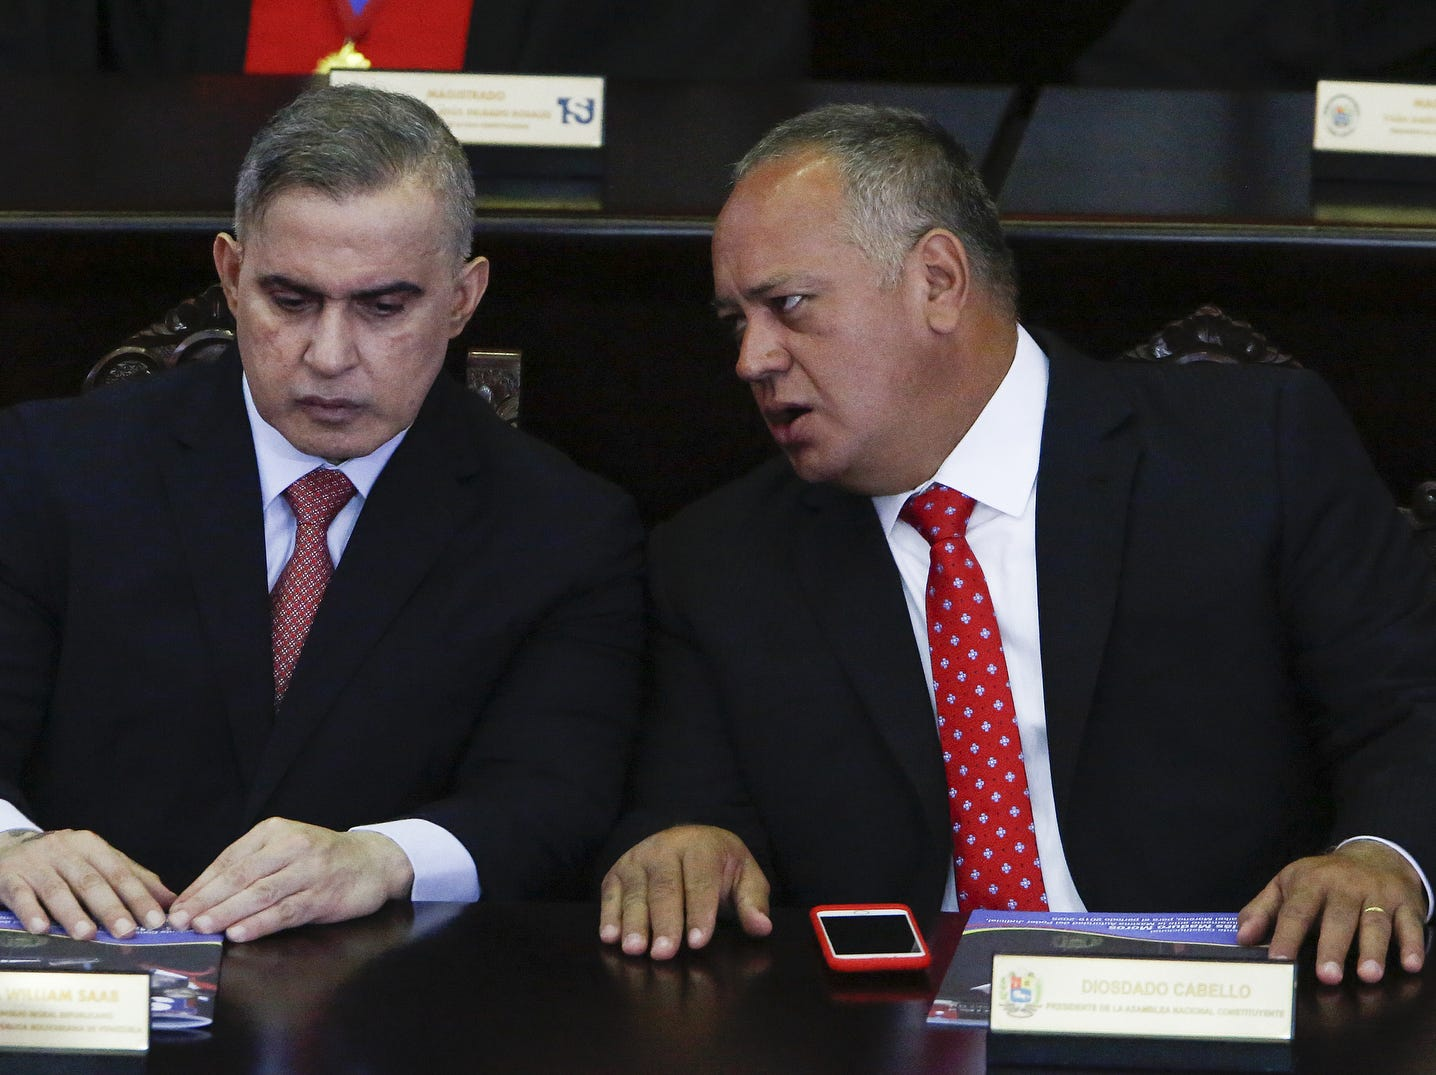 President of the Constituent Assembly Diosdado Cabello (R) talks to Maikel Perez President of the Supreme Tribunal of Justice of Venezuela before the speech of Nicolas Maduro in front of judges and members of the Supreme Justice Tribunal on its annual opening day of sessions, Thursday, in Caracas, Venezuela.